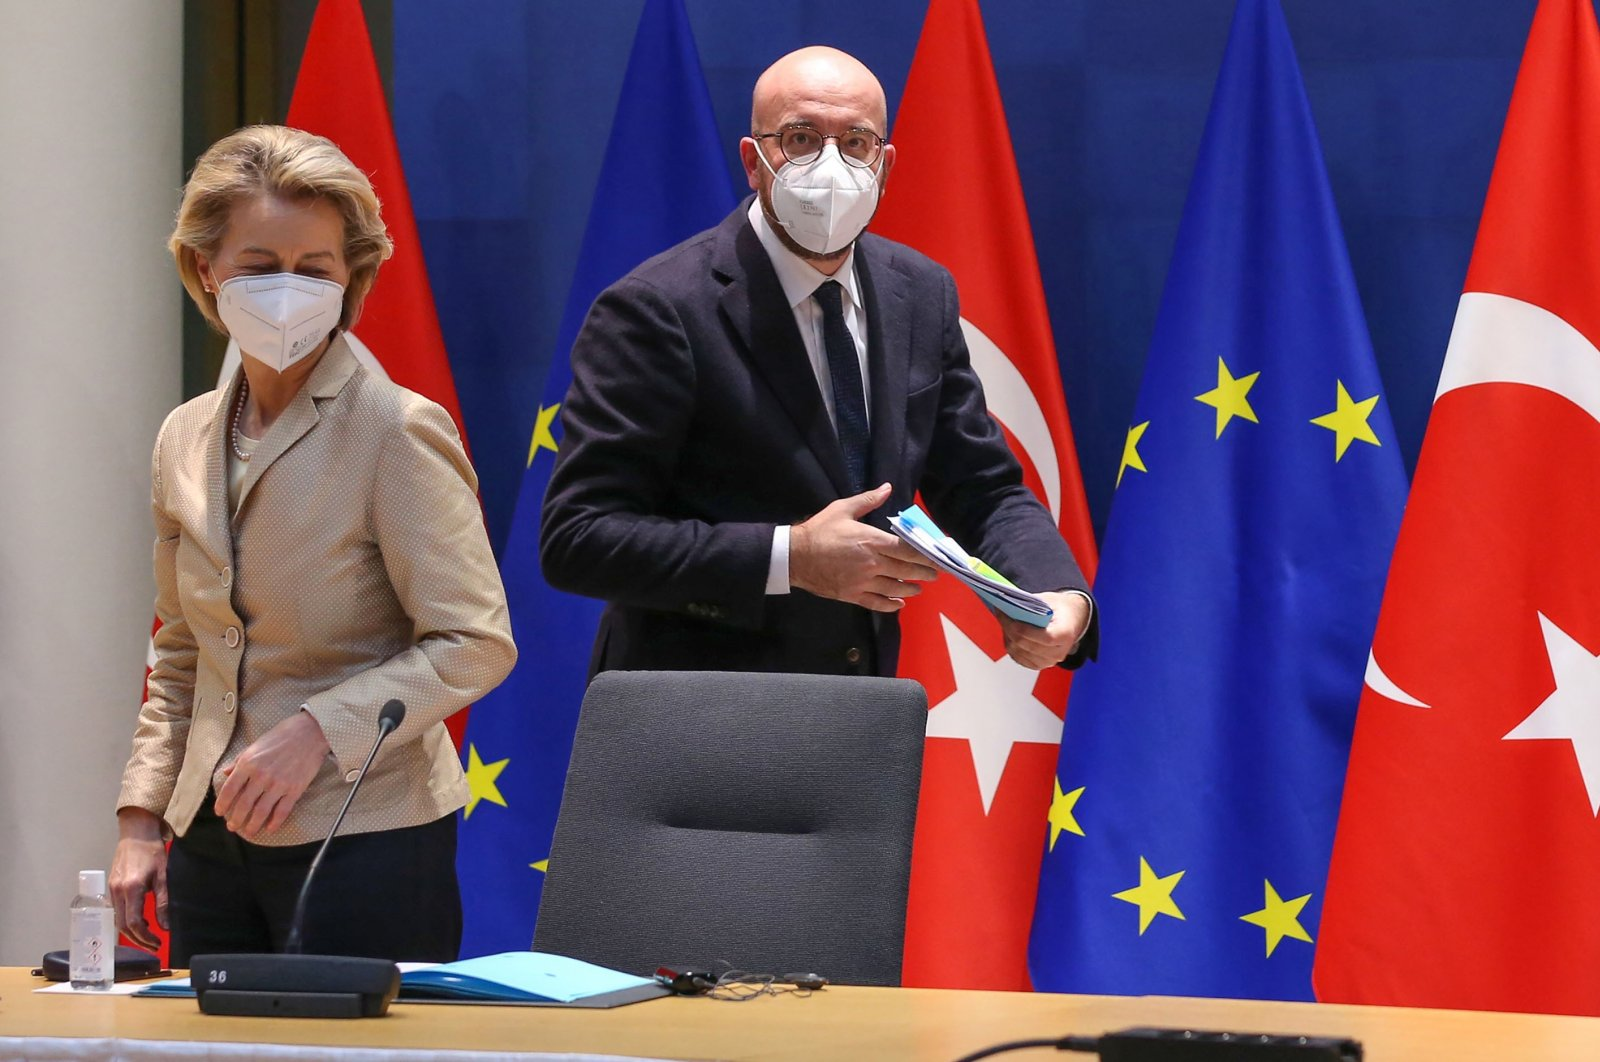 Ursula von der Leyen, president of the European Commission (L) and Charles Michel, president of the European Council, arrive for a video link meeting with Turkey's President Recep Tayyip Erdoğan, not pictured, at the Europa Building, Brussels, Belgium, March 19, 2021. (Getty Images)